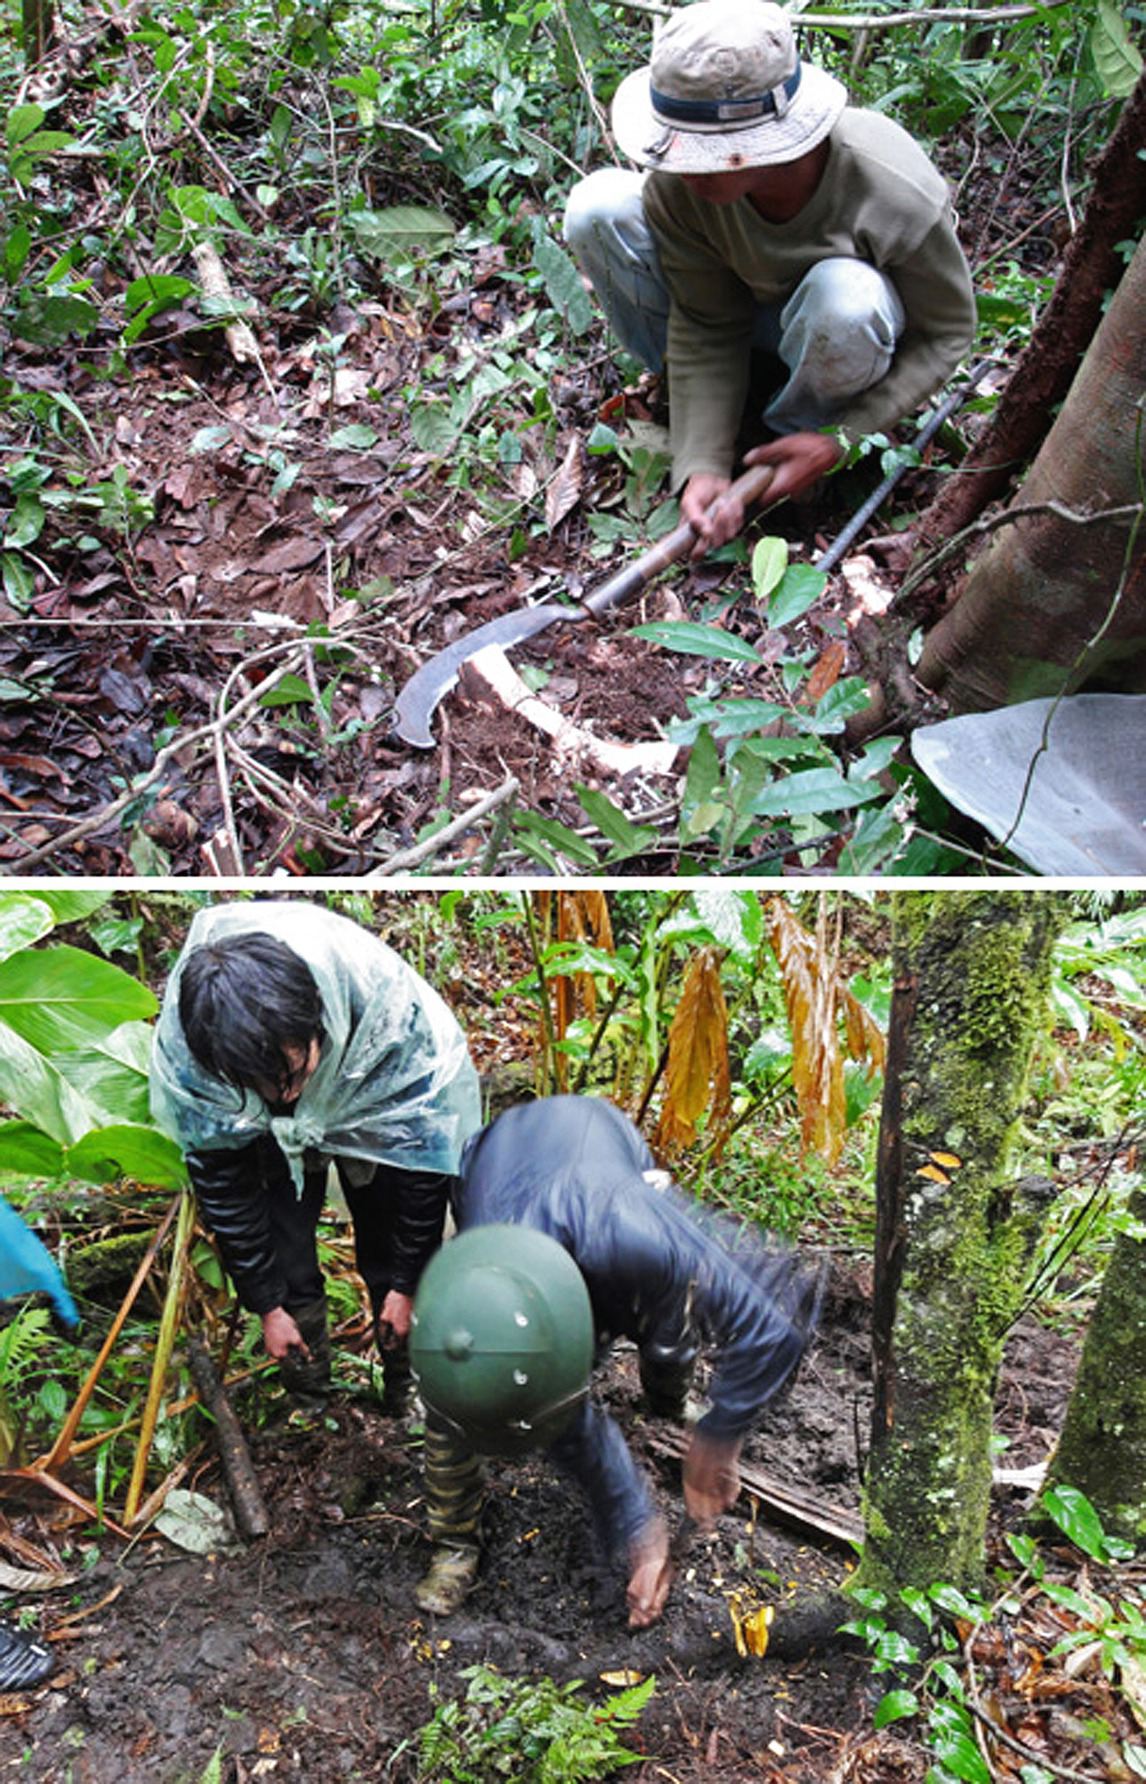 The Search for Anticancer Agents from Tropical Plants